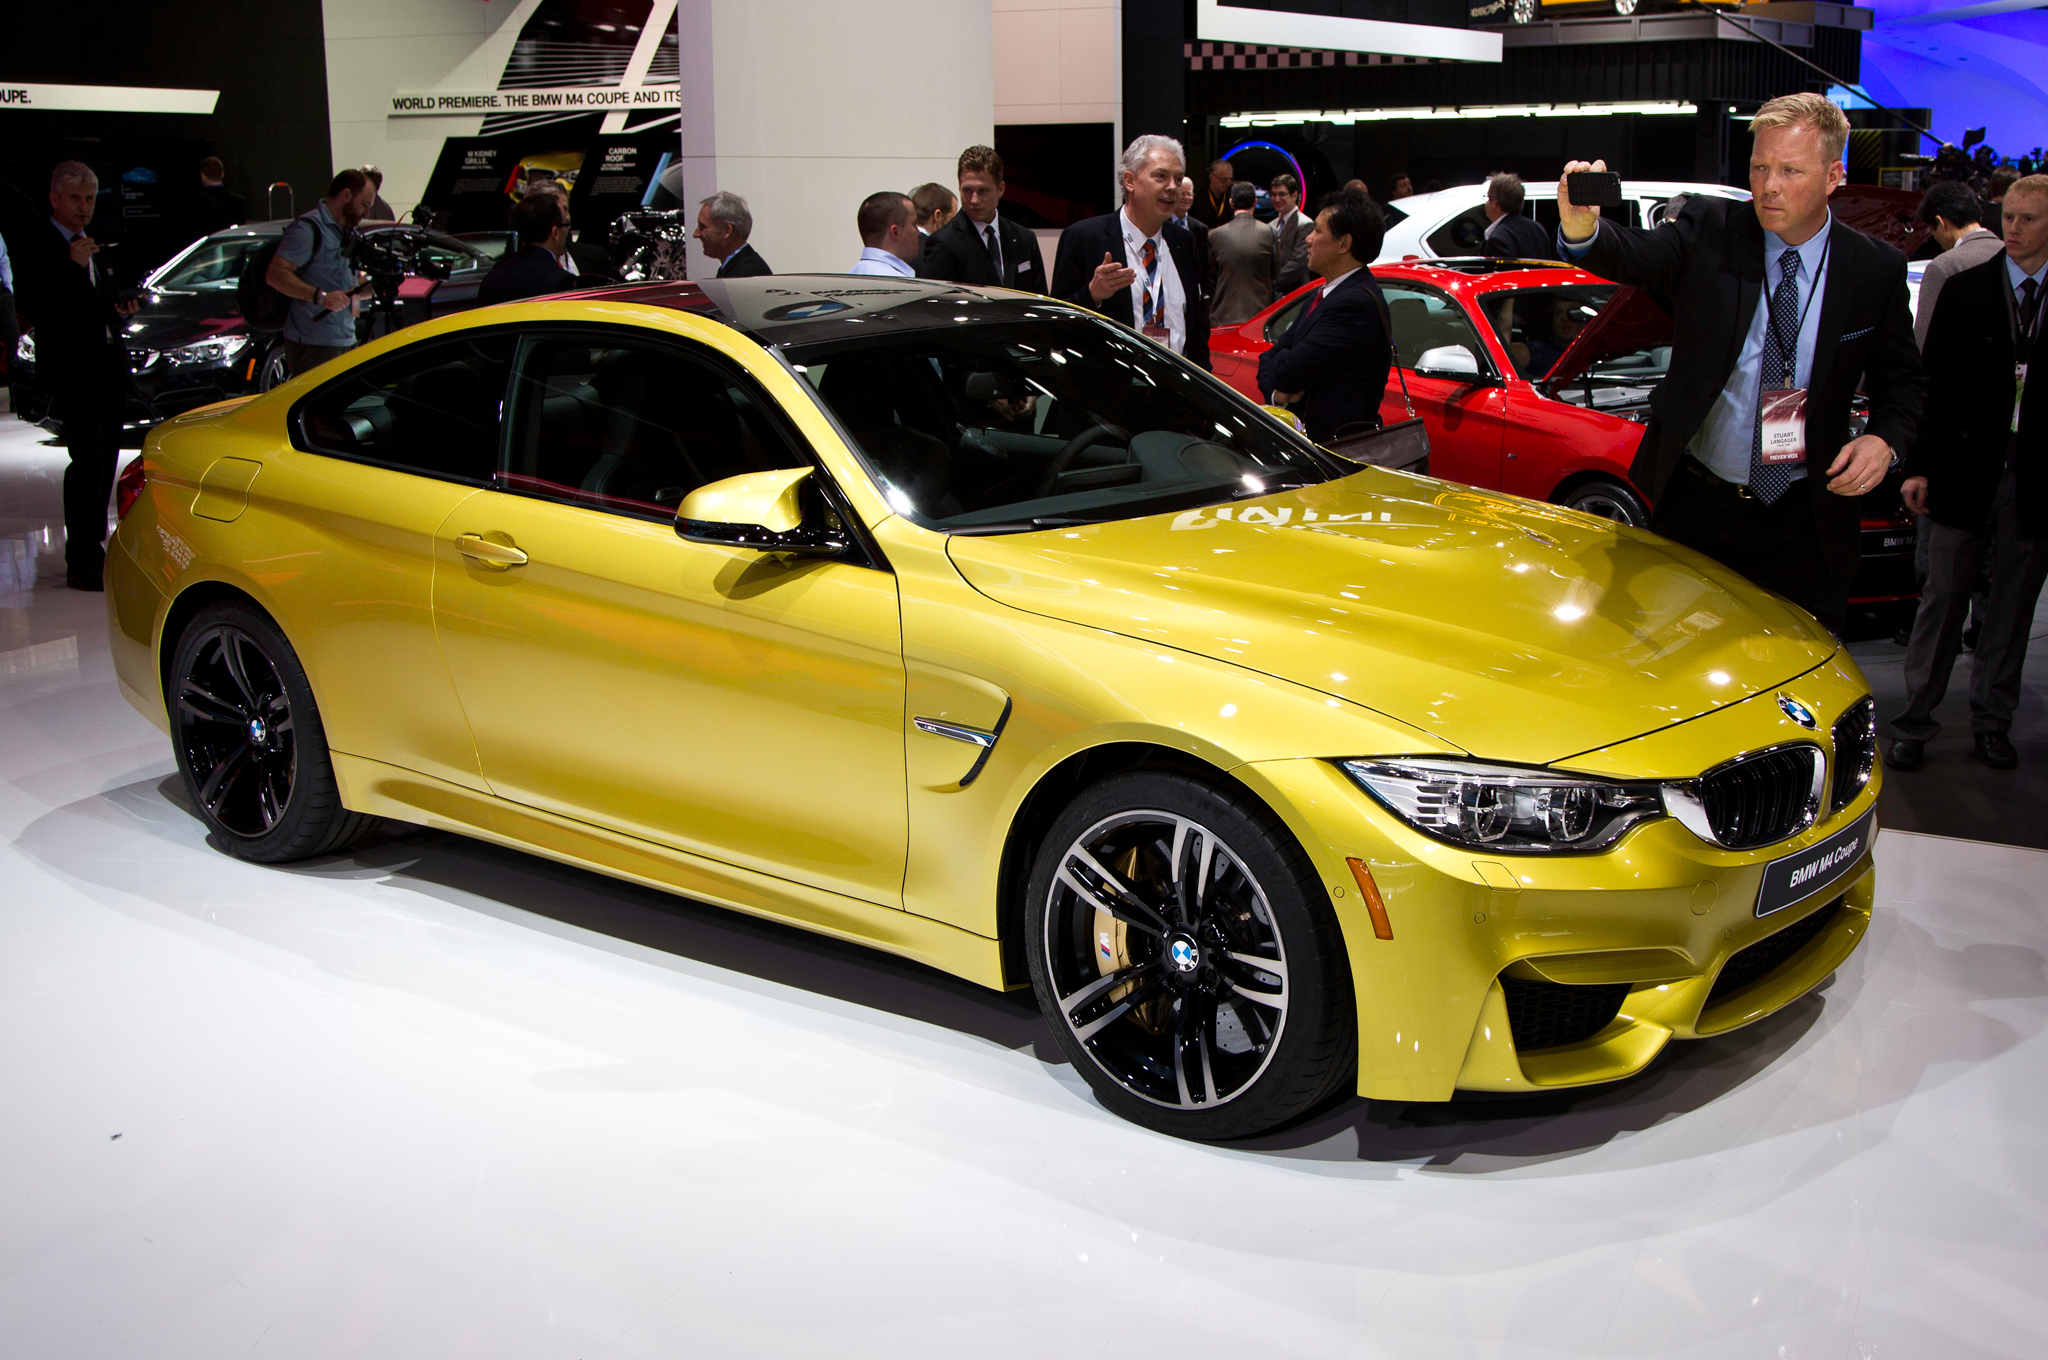 2015 BMW M4 Coupe photo - 1